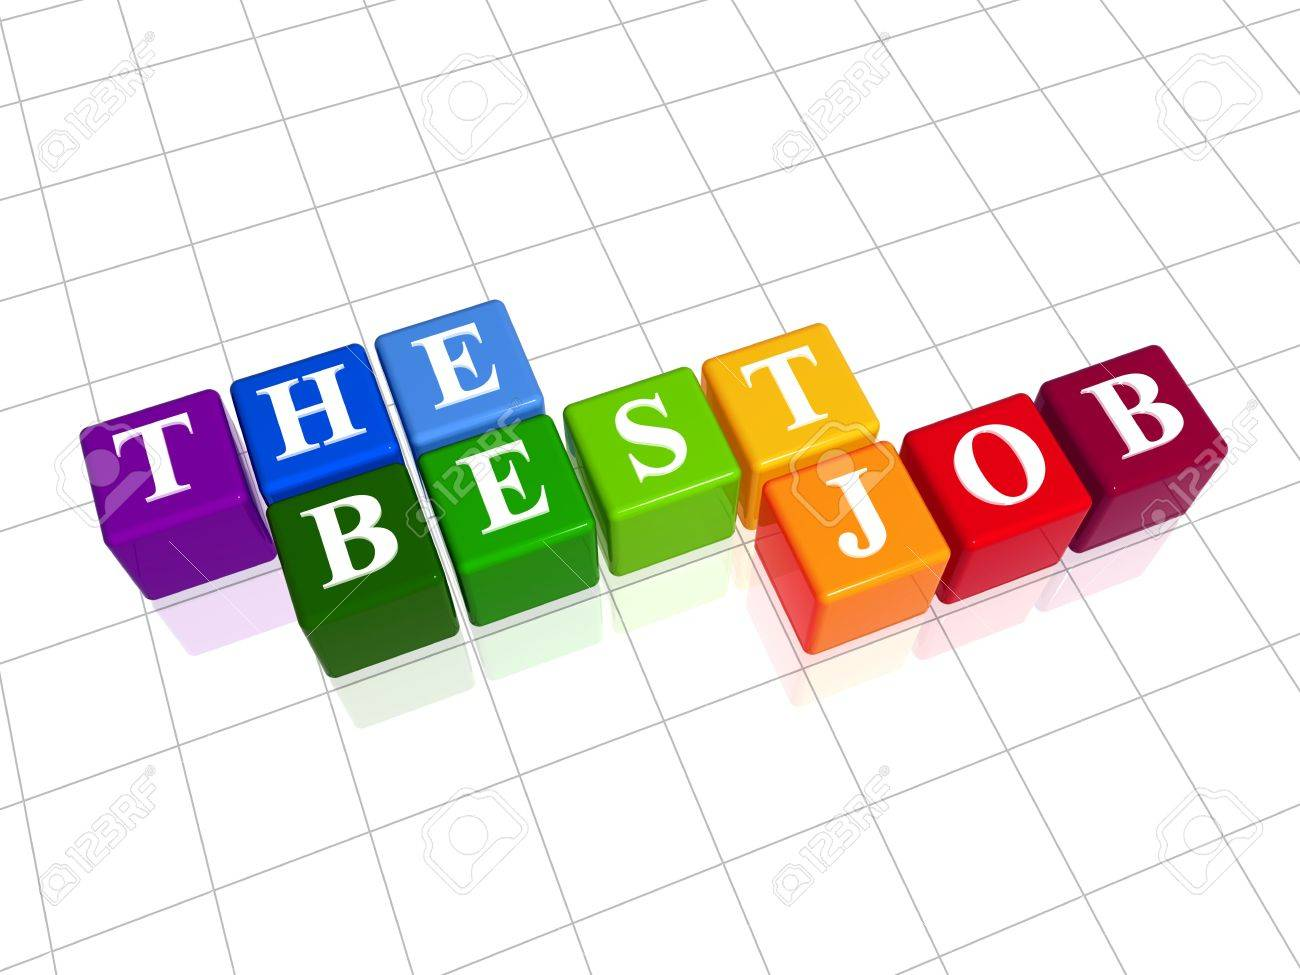 d colour boxes text the best job word stock photo 3d colour boxes text the best job word stock photo 3393009